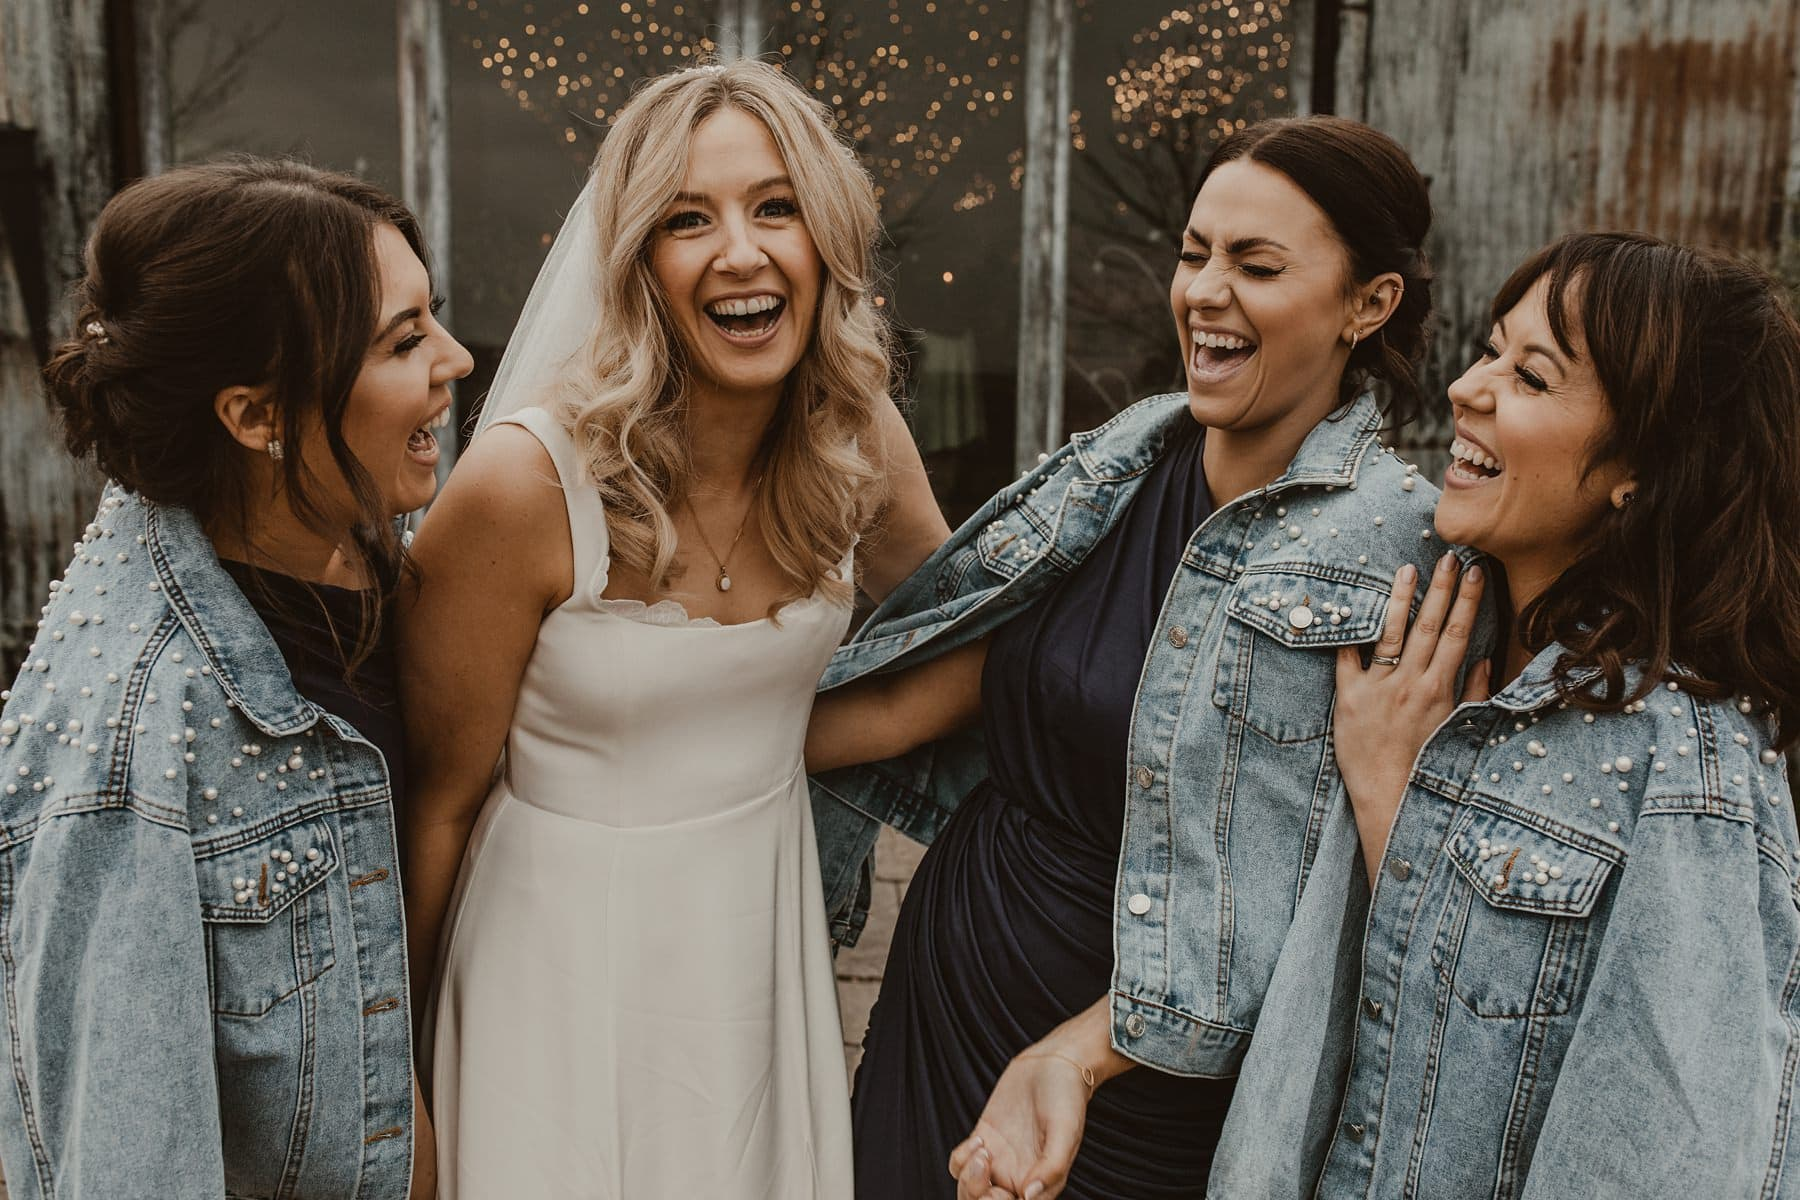 Bride and bridesmaids wearing denim jackets